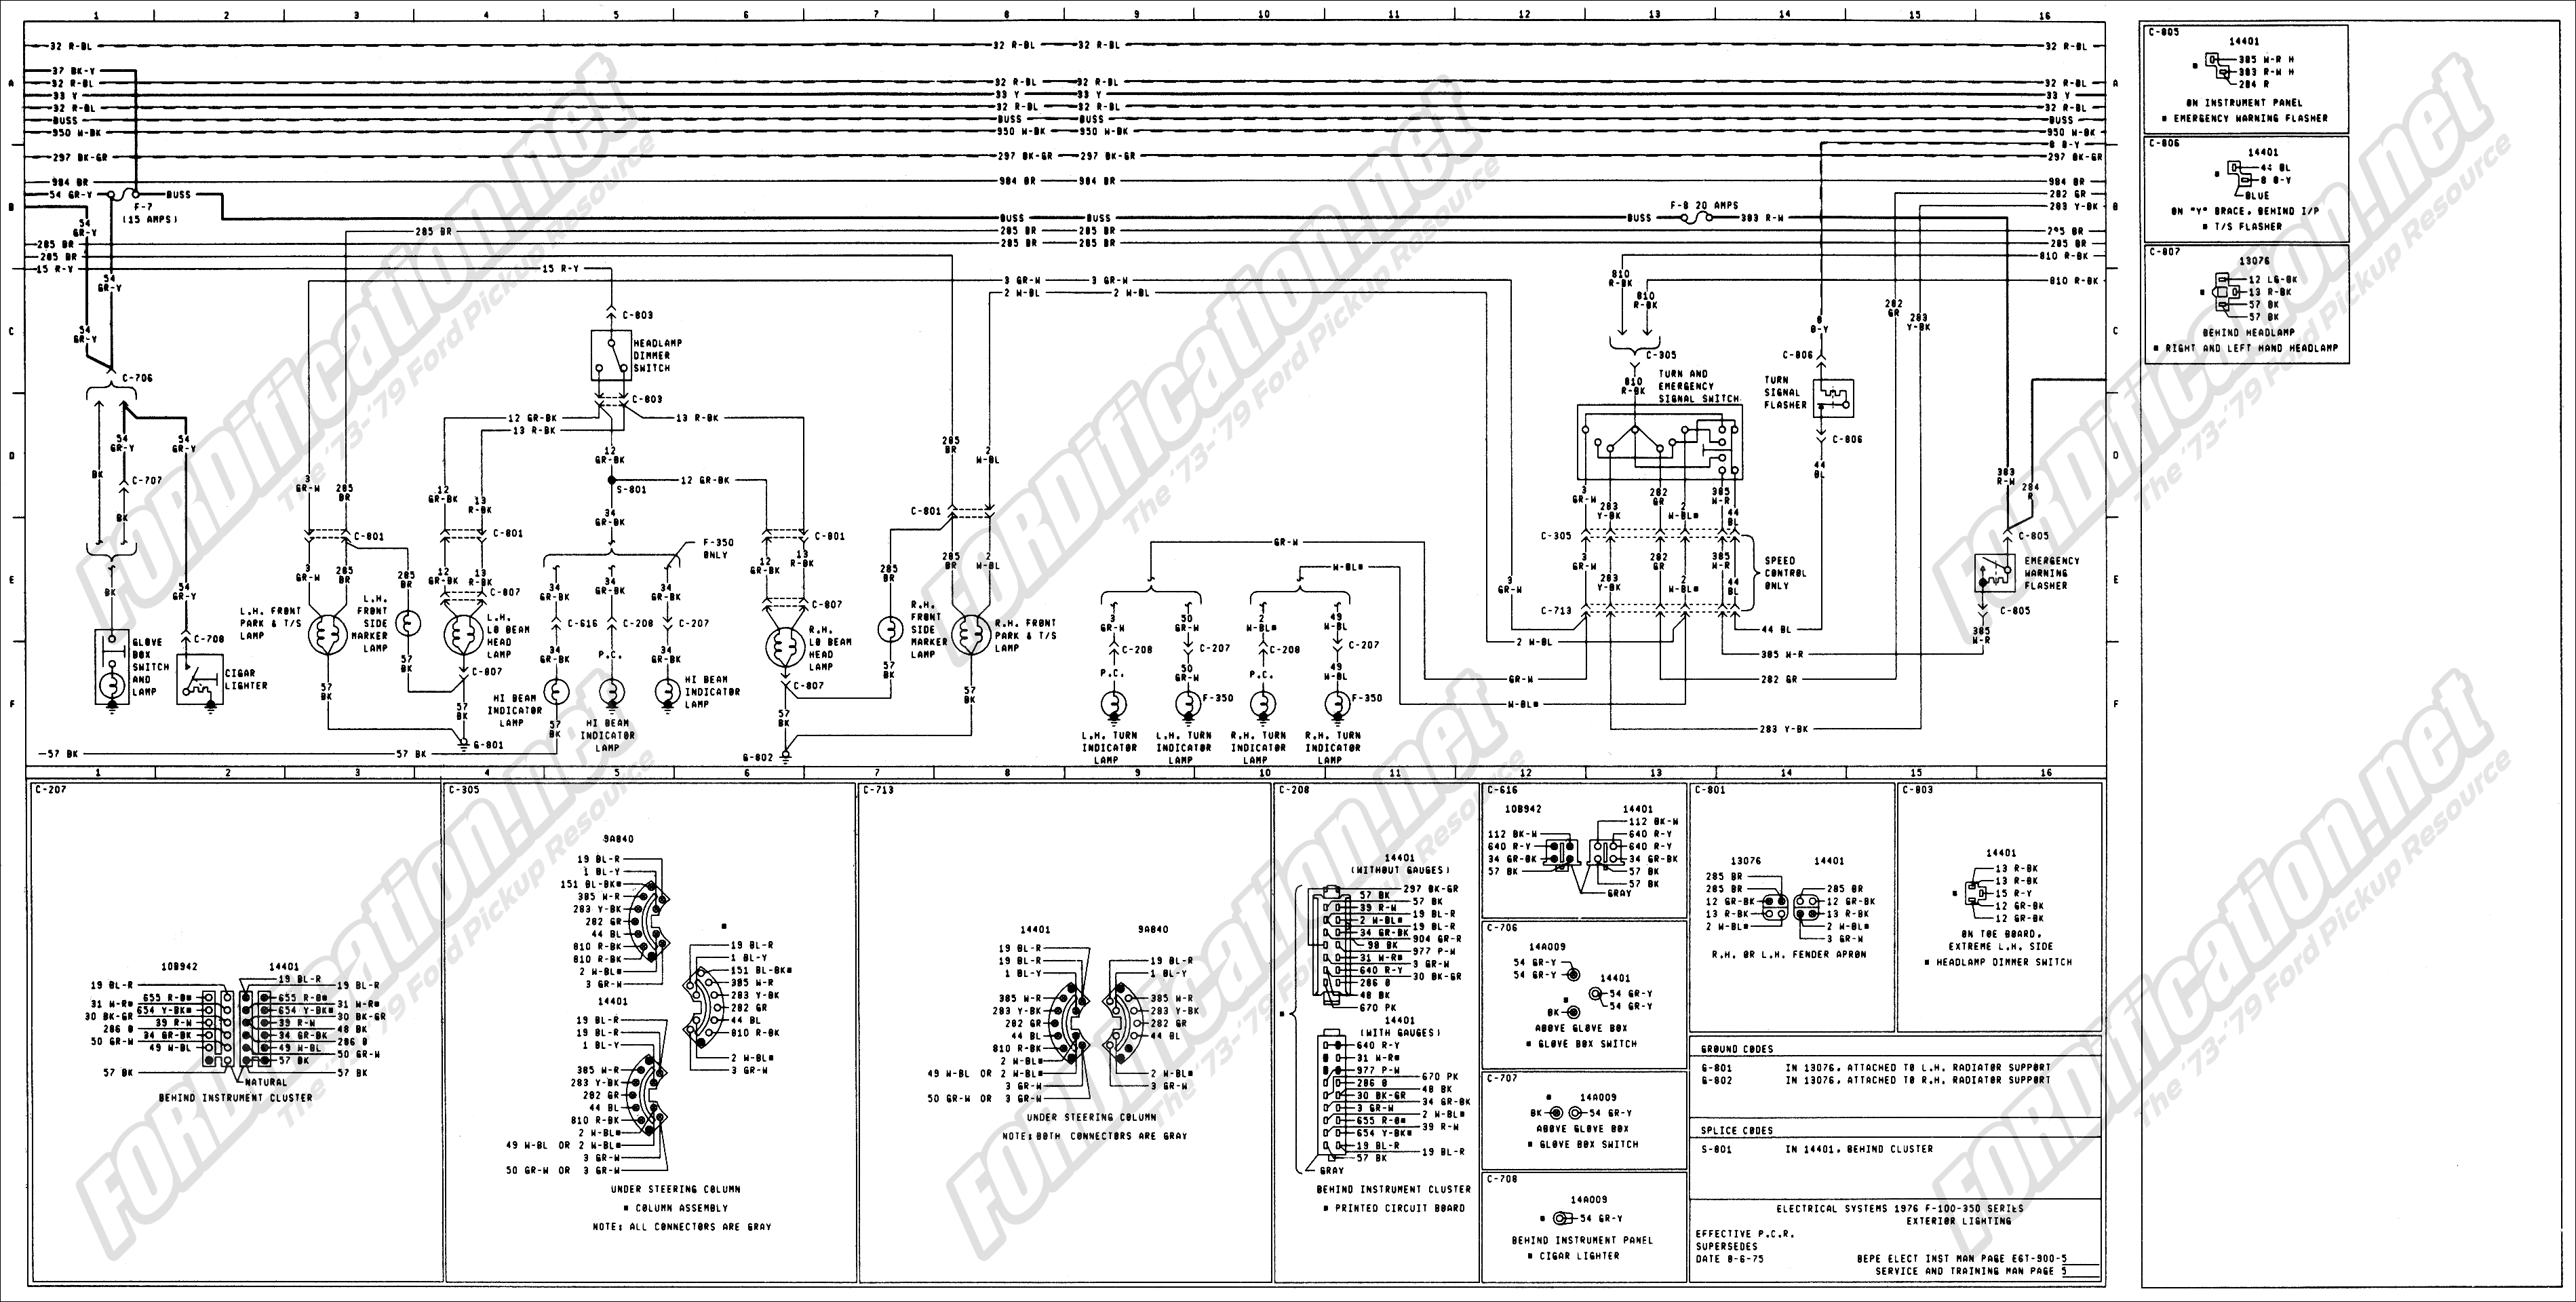 19731979 Ford Truck Wiring Diagrams Schematics FORDificationnet – Ignition Switch Wiring Diagram For 1977 F150